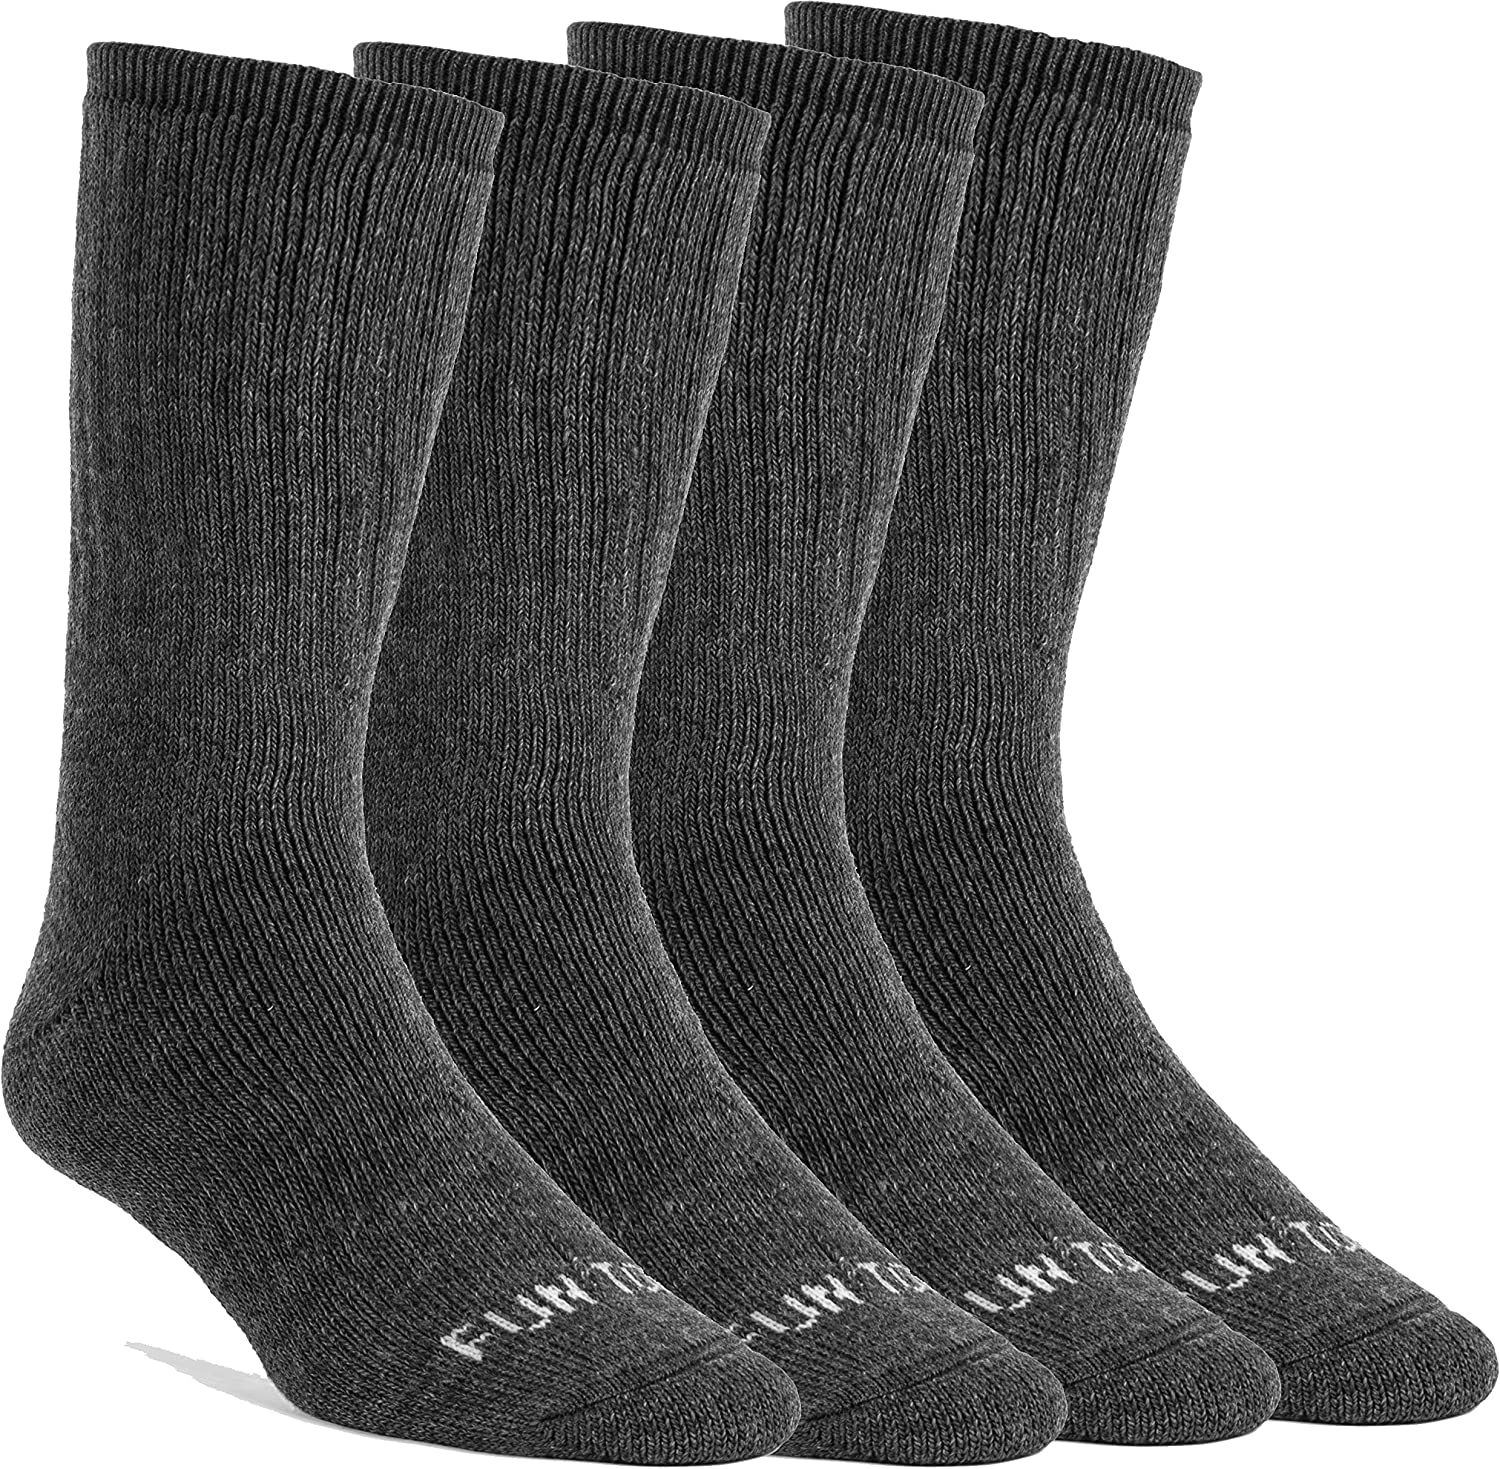 Hiking Size 8-12 FUN TOES 3 Pairs Thermal Insulated 80/% Merino Wool Socks Mens